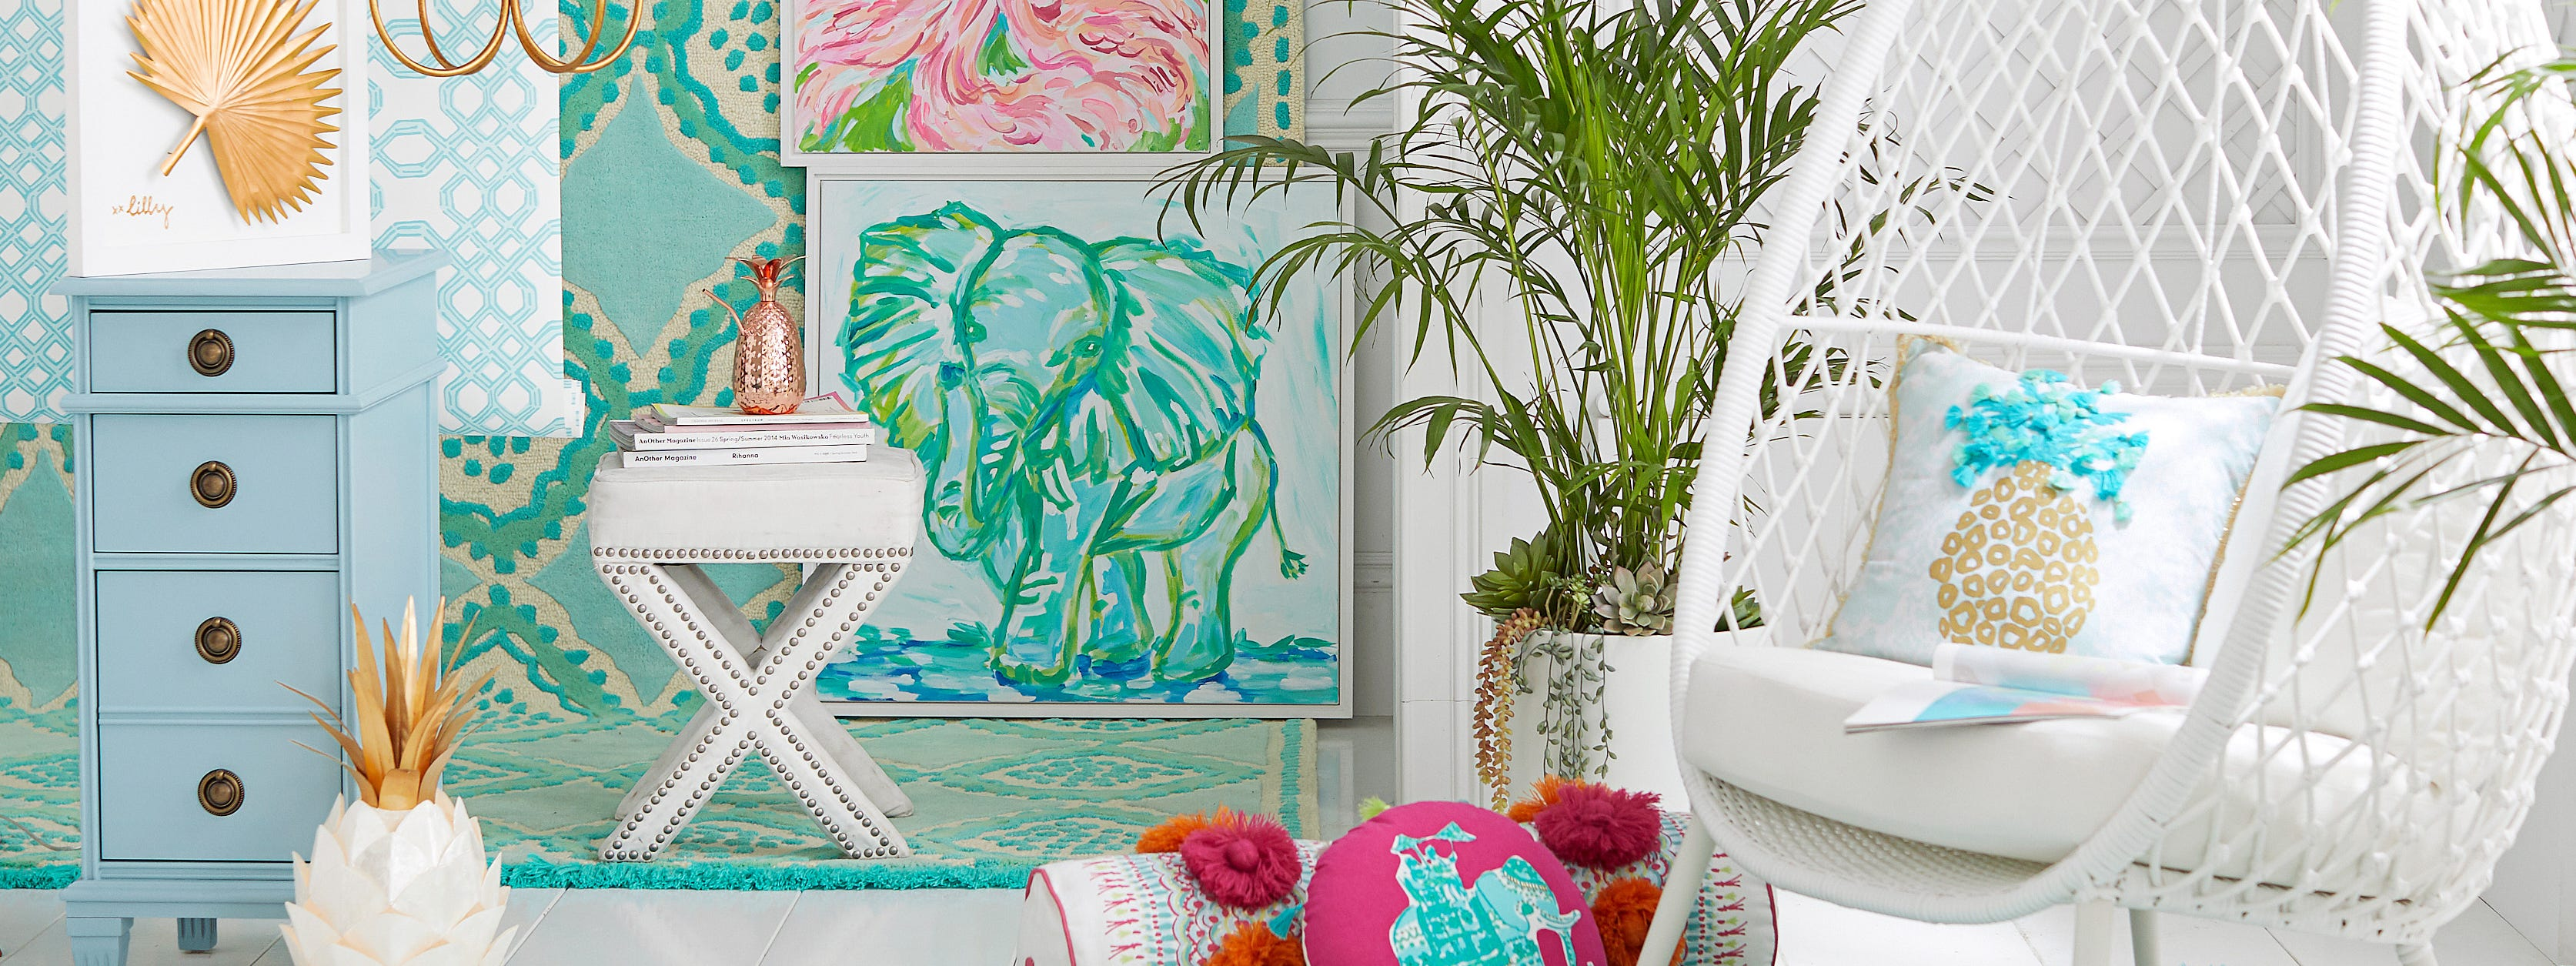 lilly cover kids and trends bedding duvet decorative janice garnet designer miss cotton sheets uncategorized for white awesome ideas collections comforter sets pulitzer dorm top uk beds grey hill purple online full of queen at covers size duvets picture bed buy exceptional teal lily red